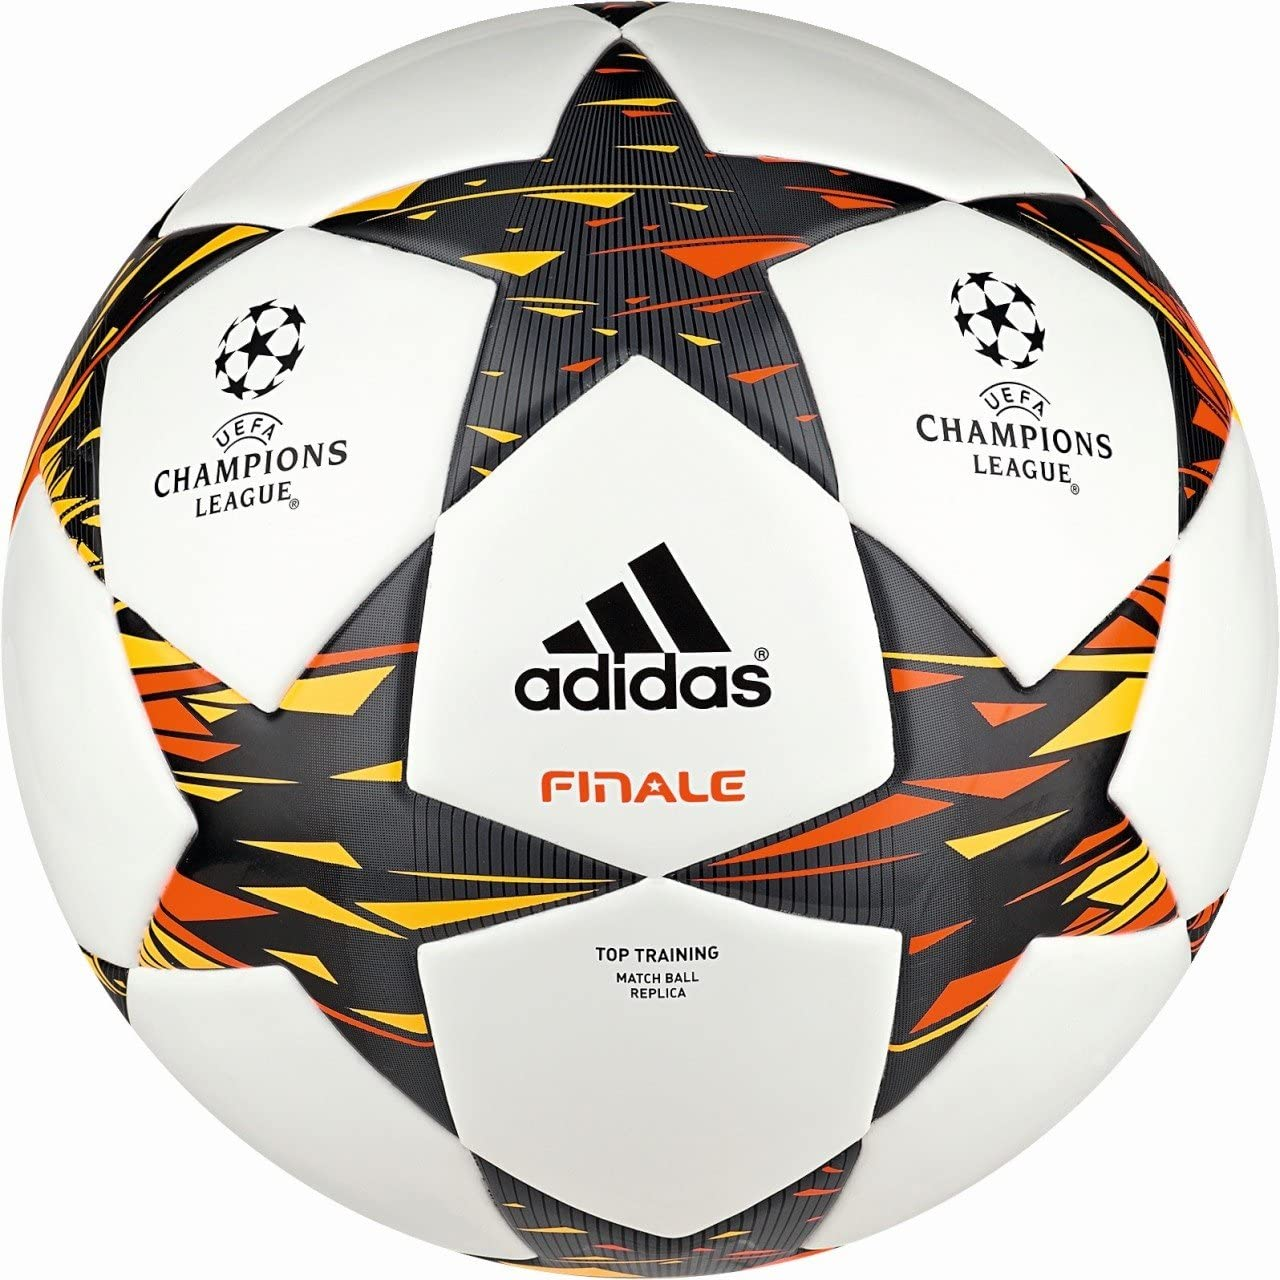 adidas FINALE 14 Top Training Ball Champions League 2014/2015 ...